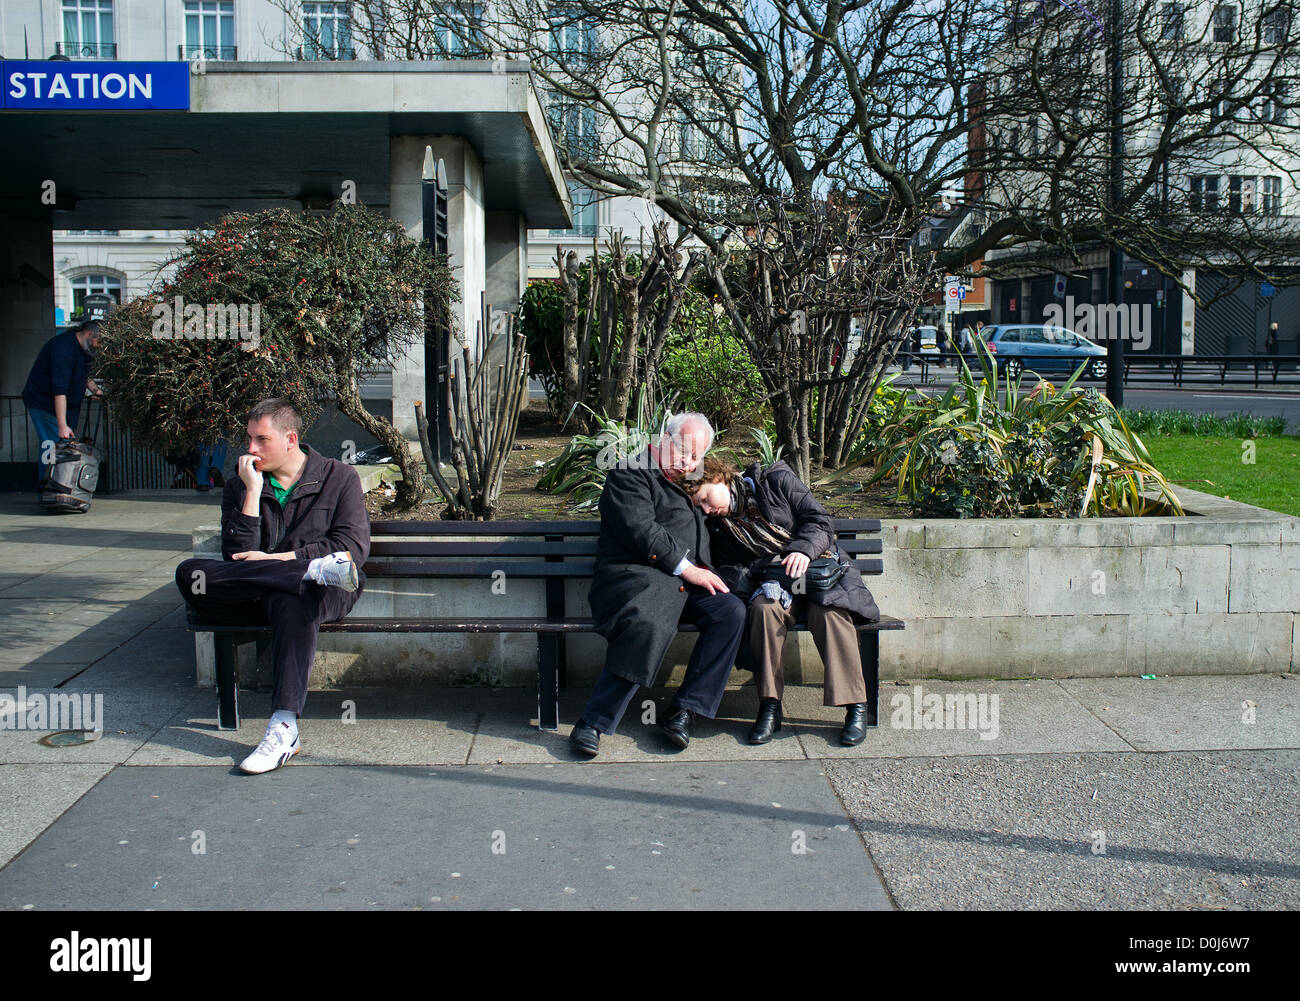 A couple sleeping on a bench in London. Stock Photo